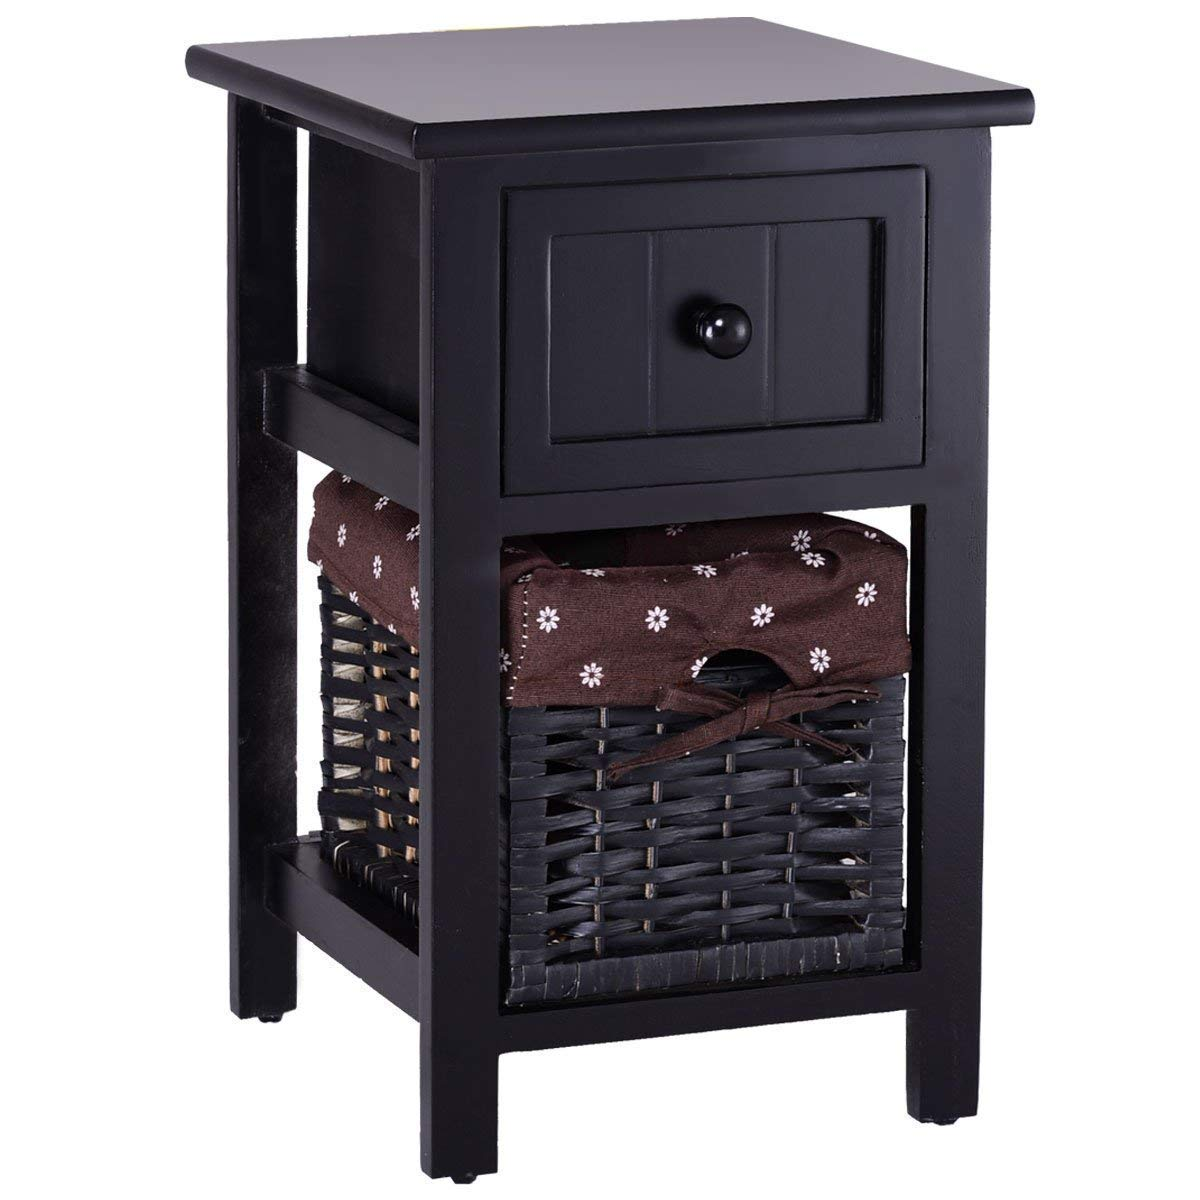 Giantex Nightstand 2 Tier End Table Bedside Compact Organizer Wooden W/Drawer & Basket for Living Room Bedroom Home Furniture Side Small End Tables (1, Black)